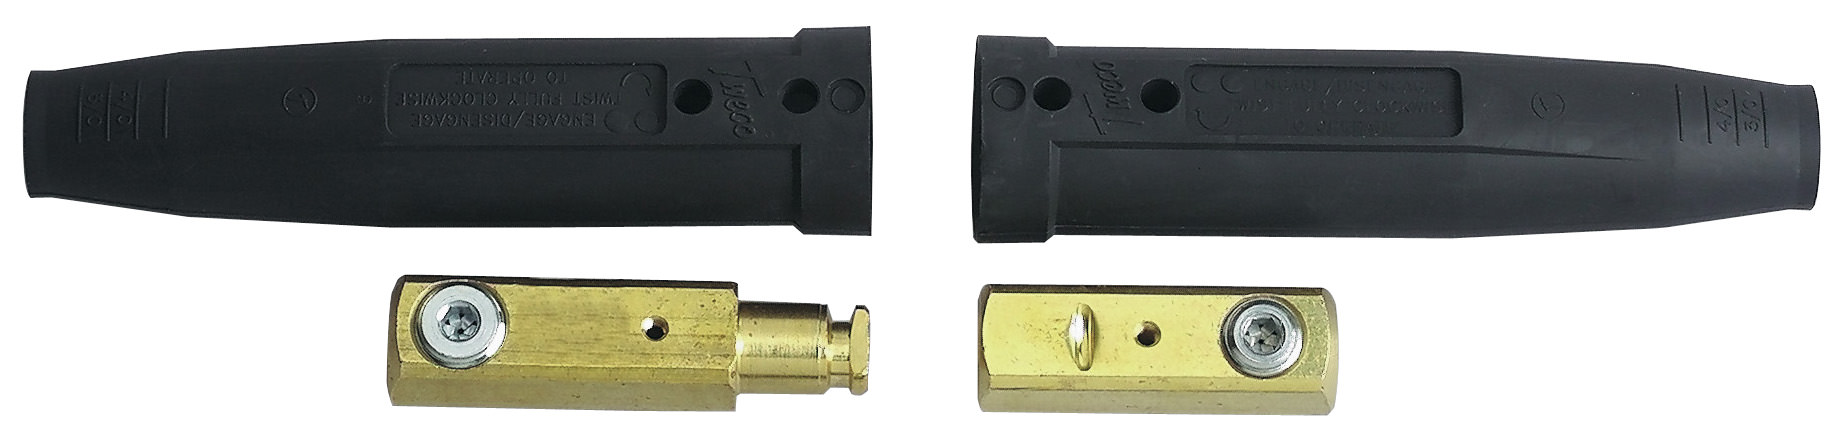 Tweco Weld Cable Connectors - MPC